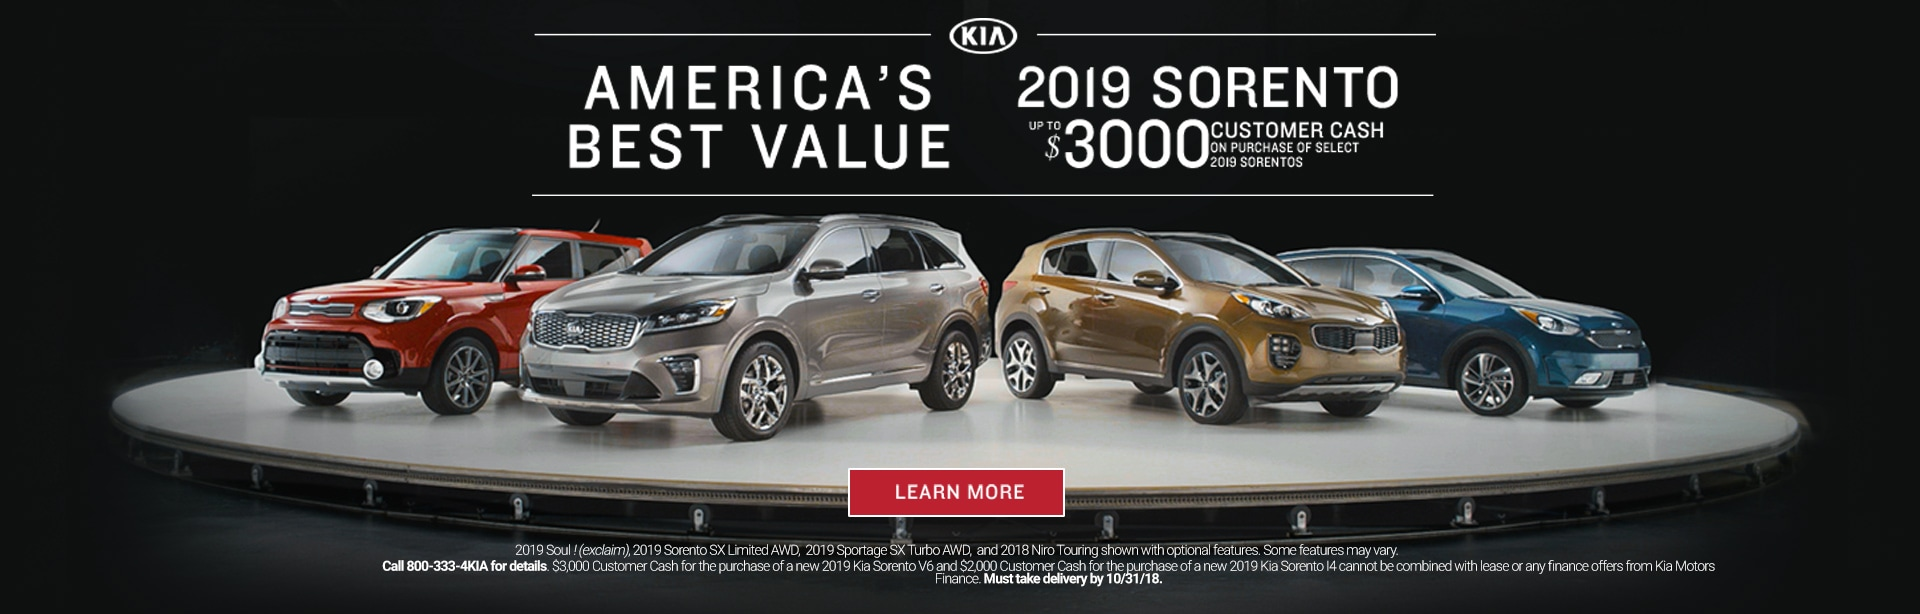 Captivating Fairfax Kia | New Kia Dealership In Fairfax, VA 22030